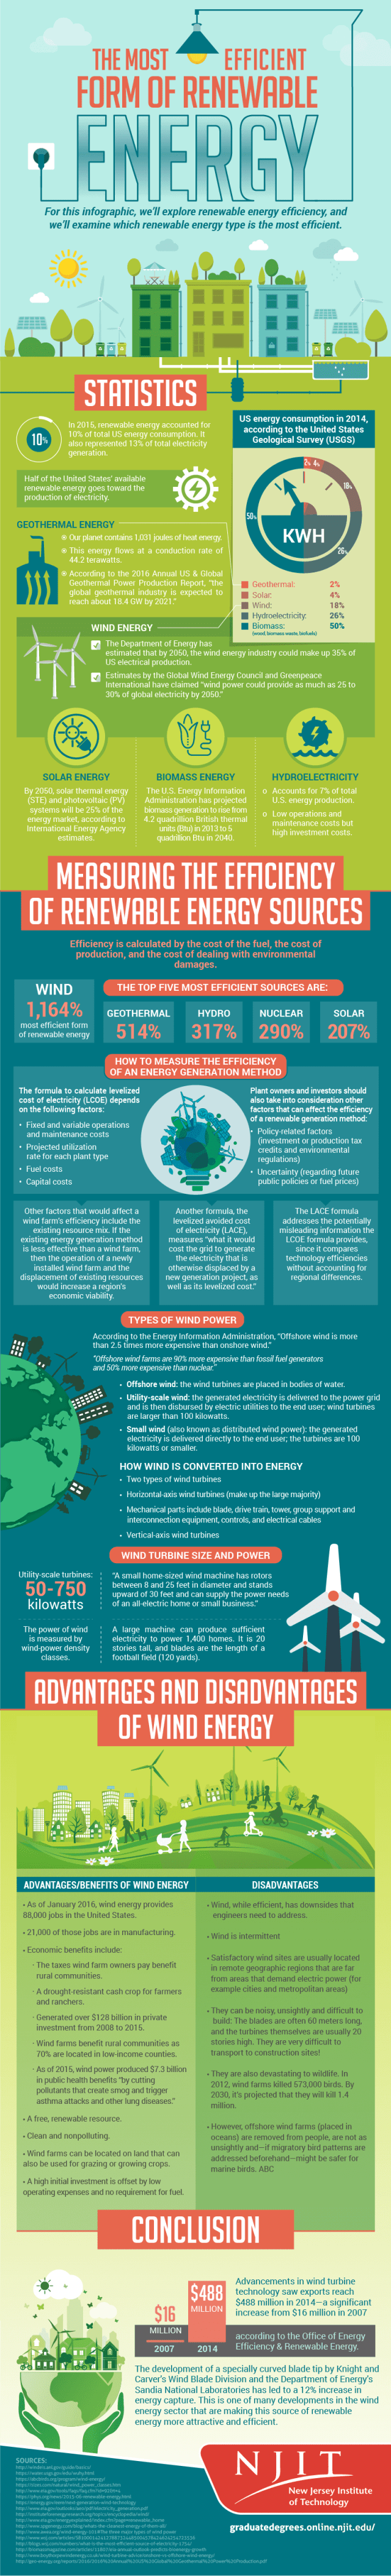 INFOGRAPHIC: The Most Efficient Form of Renewable Energy